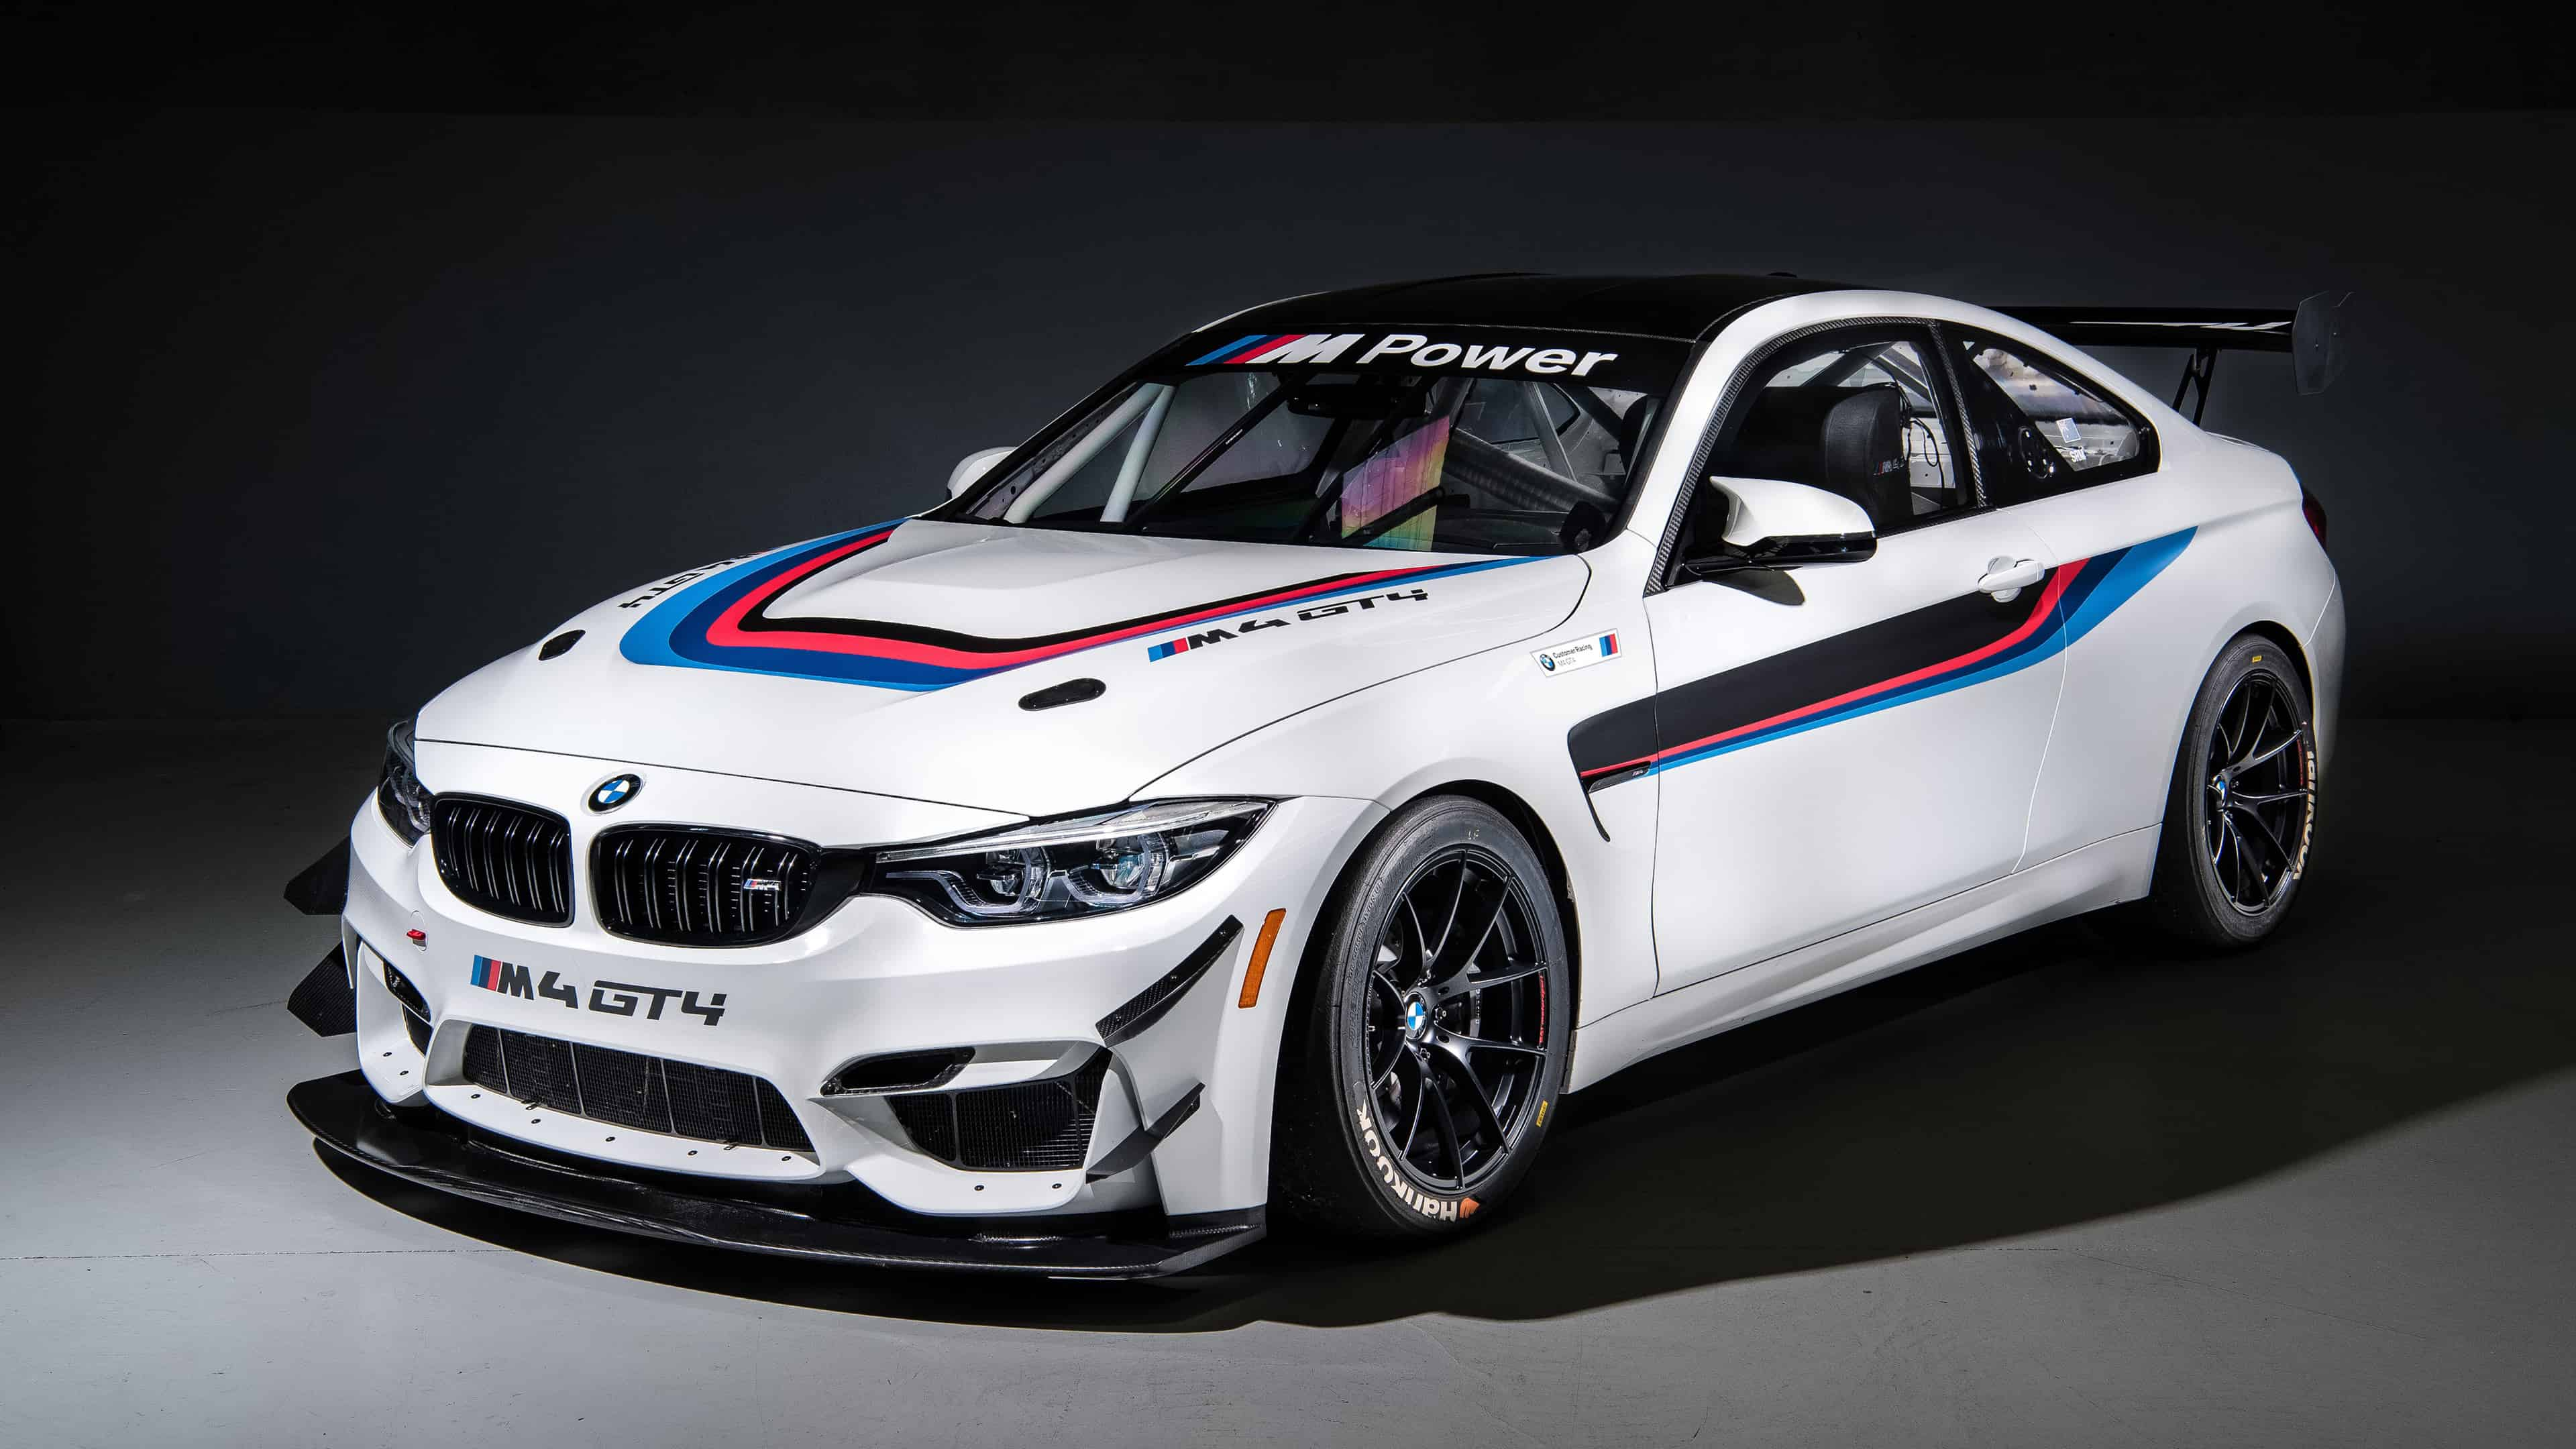 Bmw M4 Gt4 Uhd 4k Wallpaper Pixelz